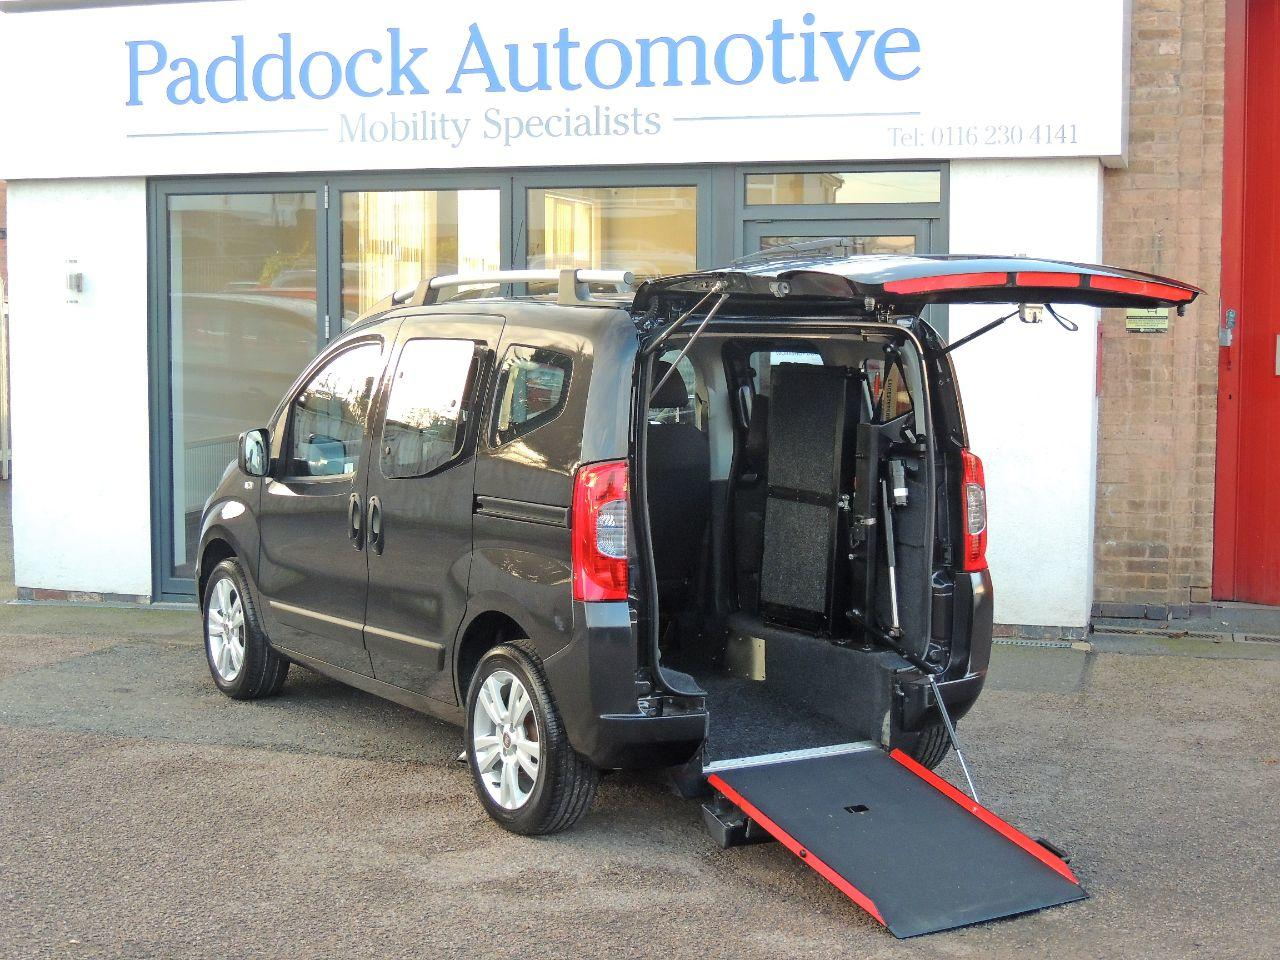 Fiat Qubo 1.3 Multijet Dynamic Dualogic Drive From and Ride Up Wheelchair Accessible Vehicle WAV Wheelchair Adapted Diesel Black Mica